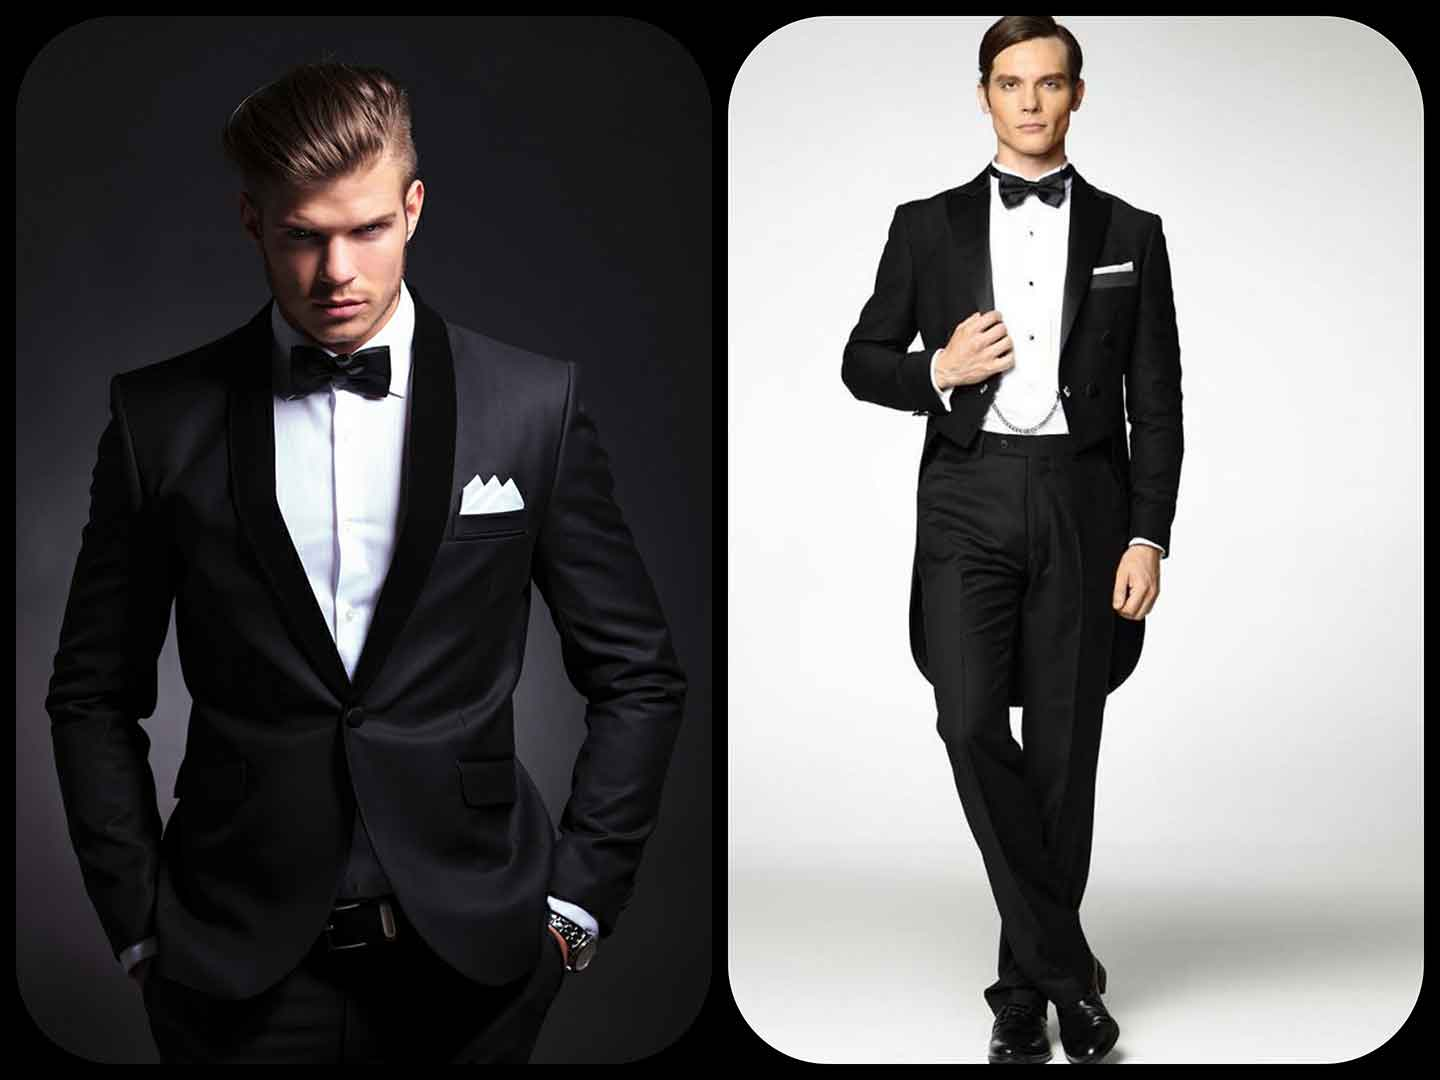 When Is Cocktail Attire for Men Appropriate